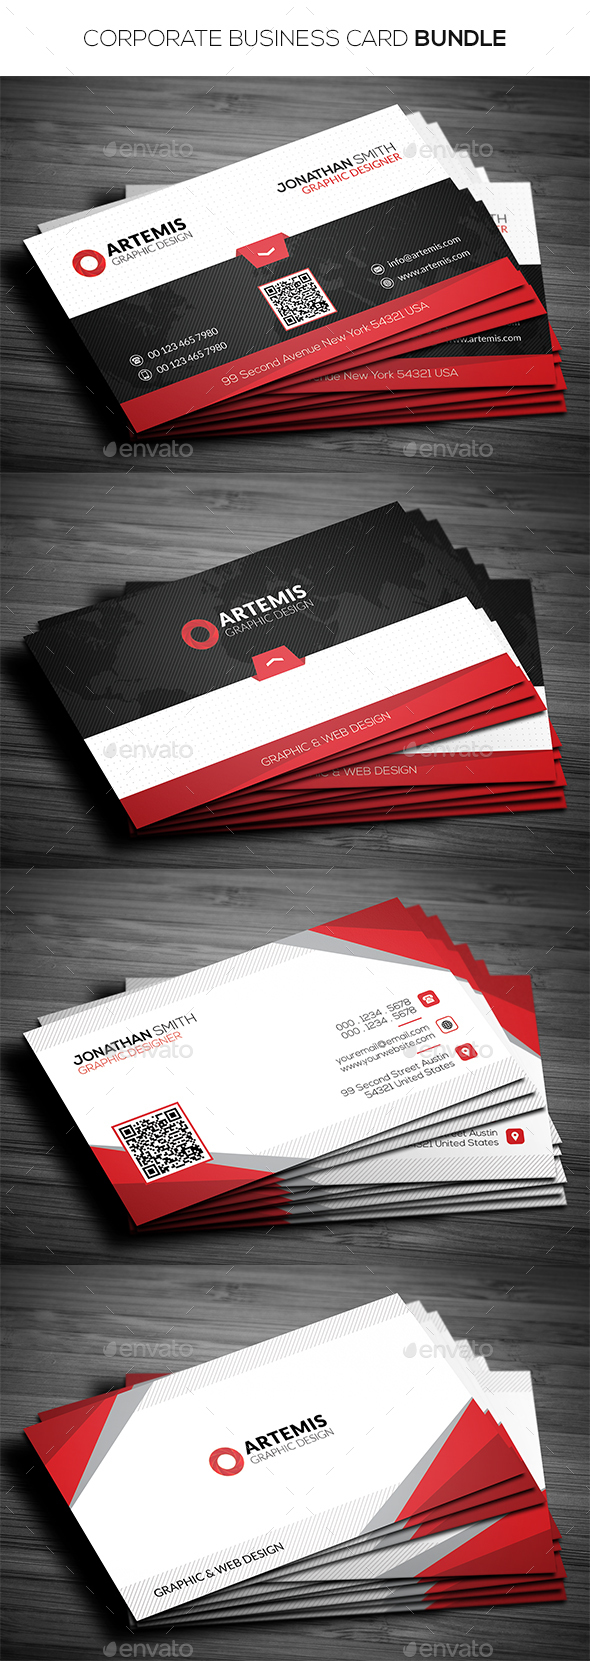 2 in 1 Corporate Business Card Bundle